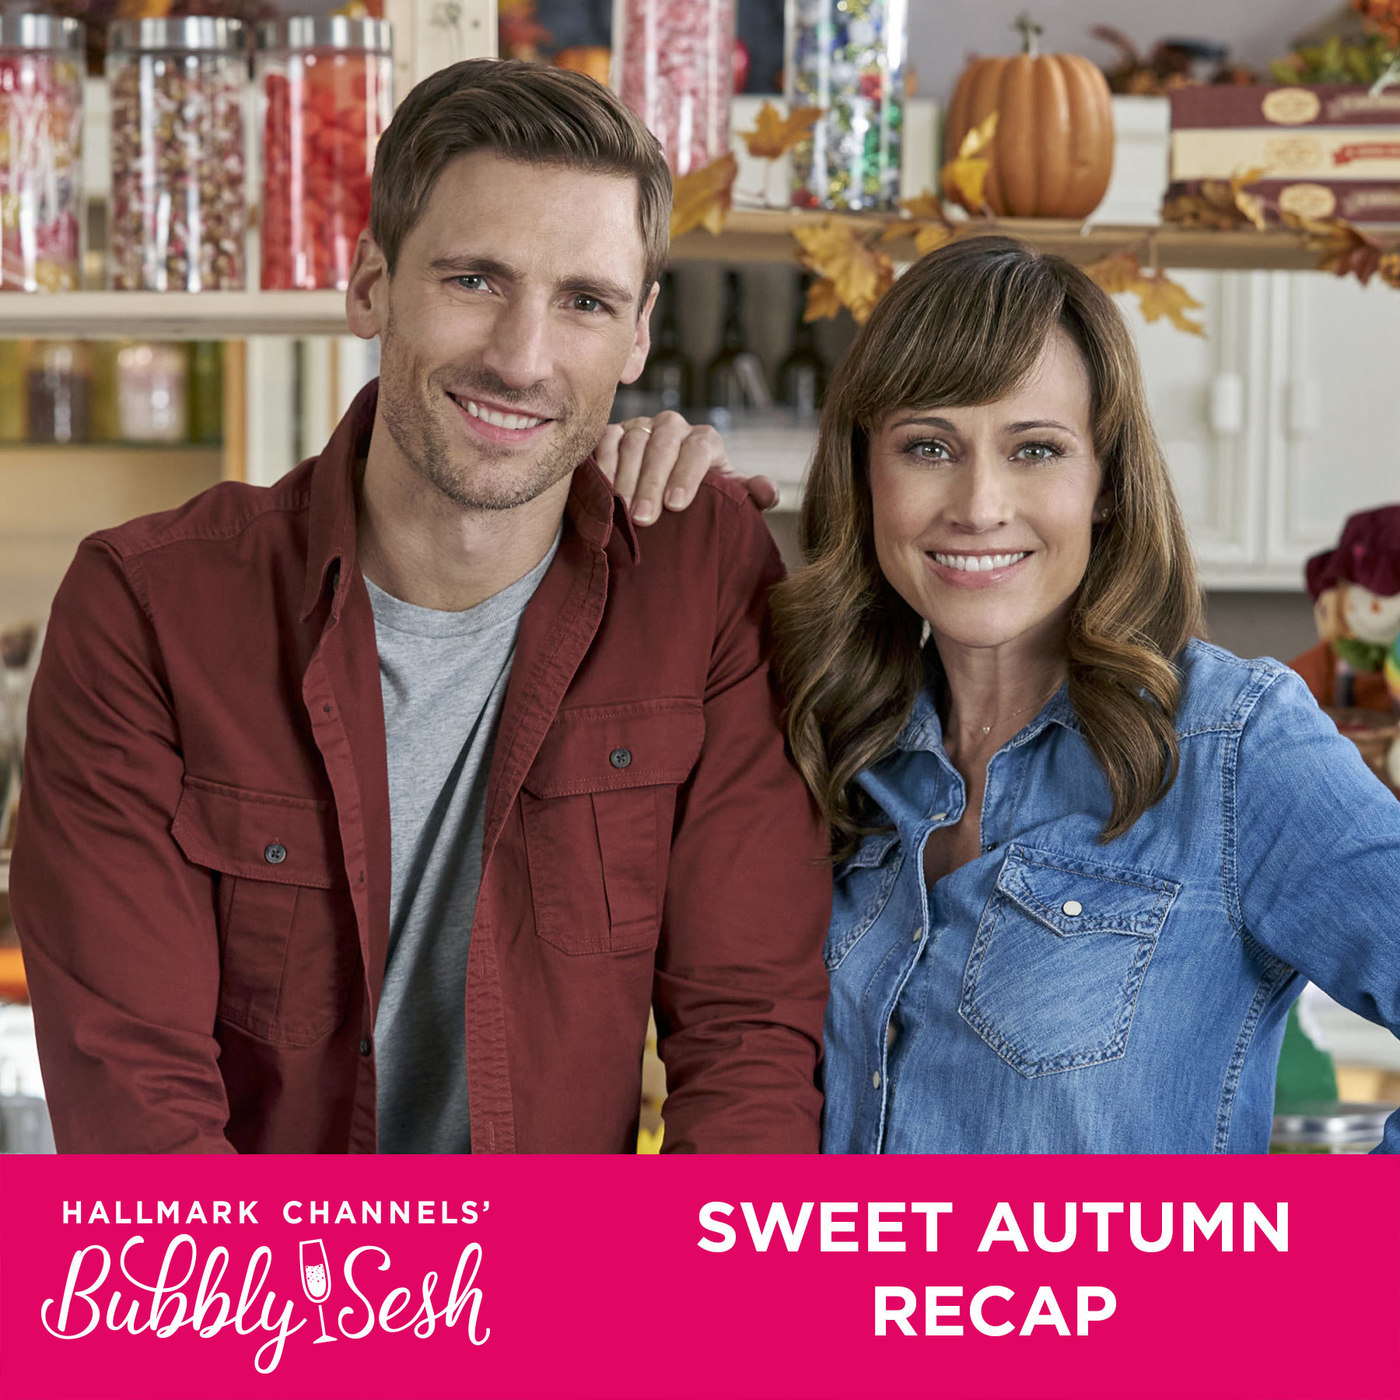 Sweet Autumn Recap